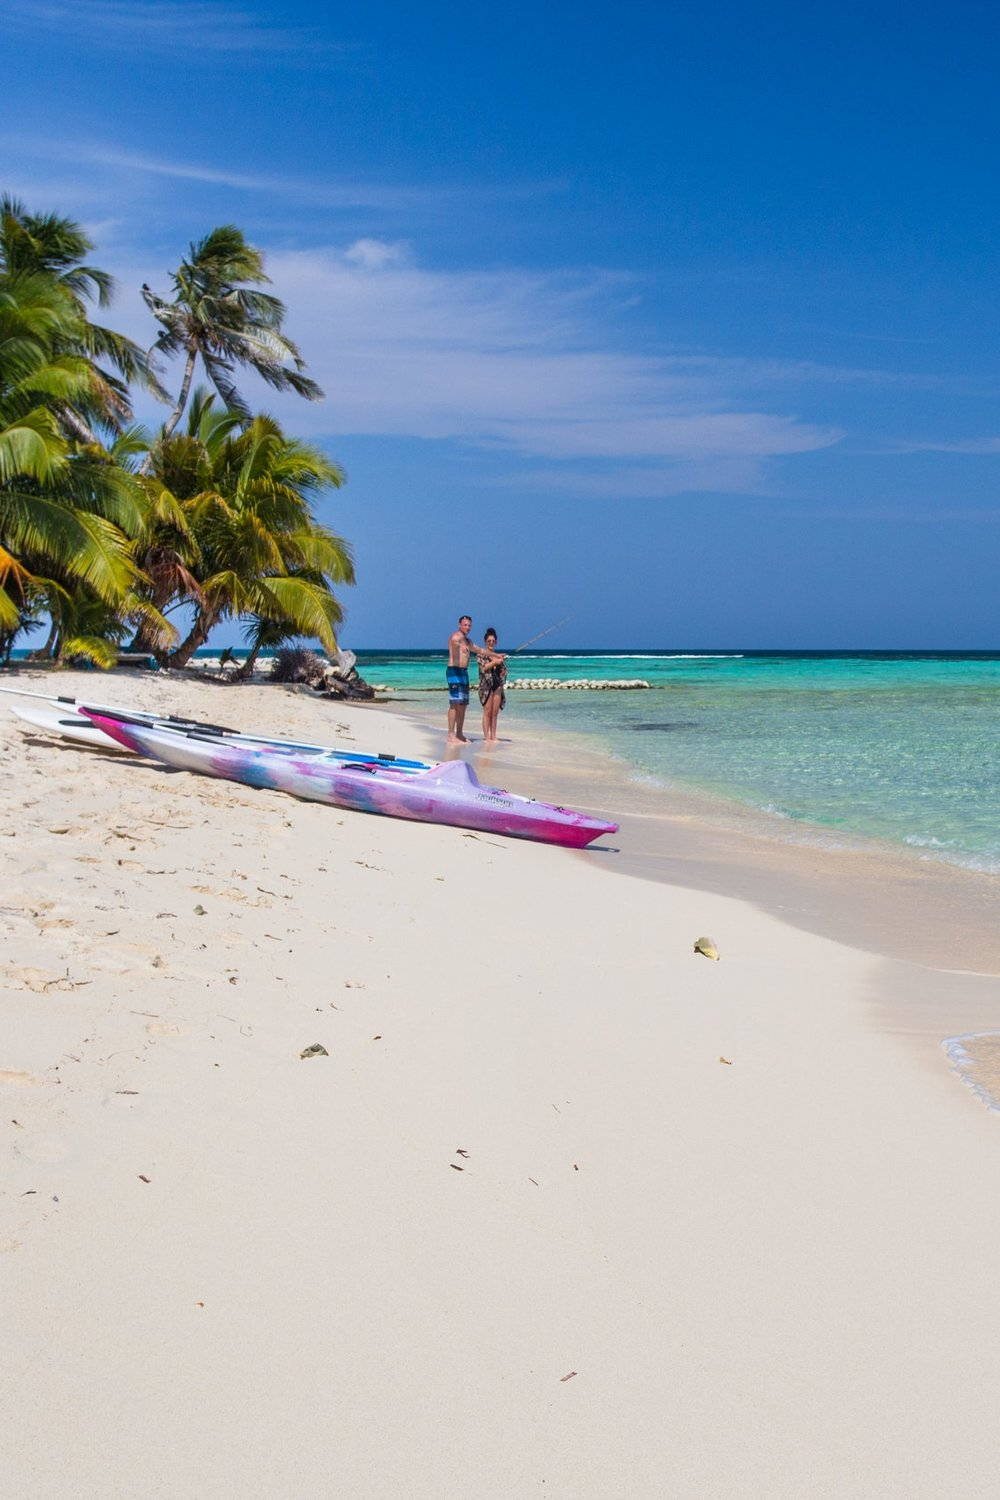 Ranguana Caye -  Take an hour boat ride to a picture-perfect 2-acre private island and spend your day in a pristine tropical paradise. Paddle board, kayak, hammock nap, sunbathe, snorkel around the island, fish, drink, eat and play beach games.